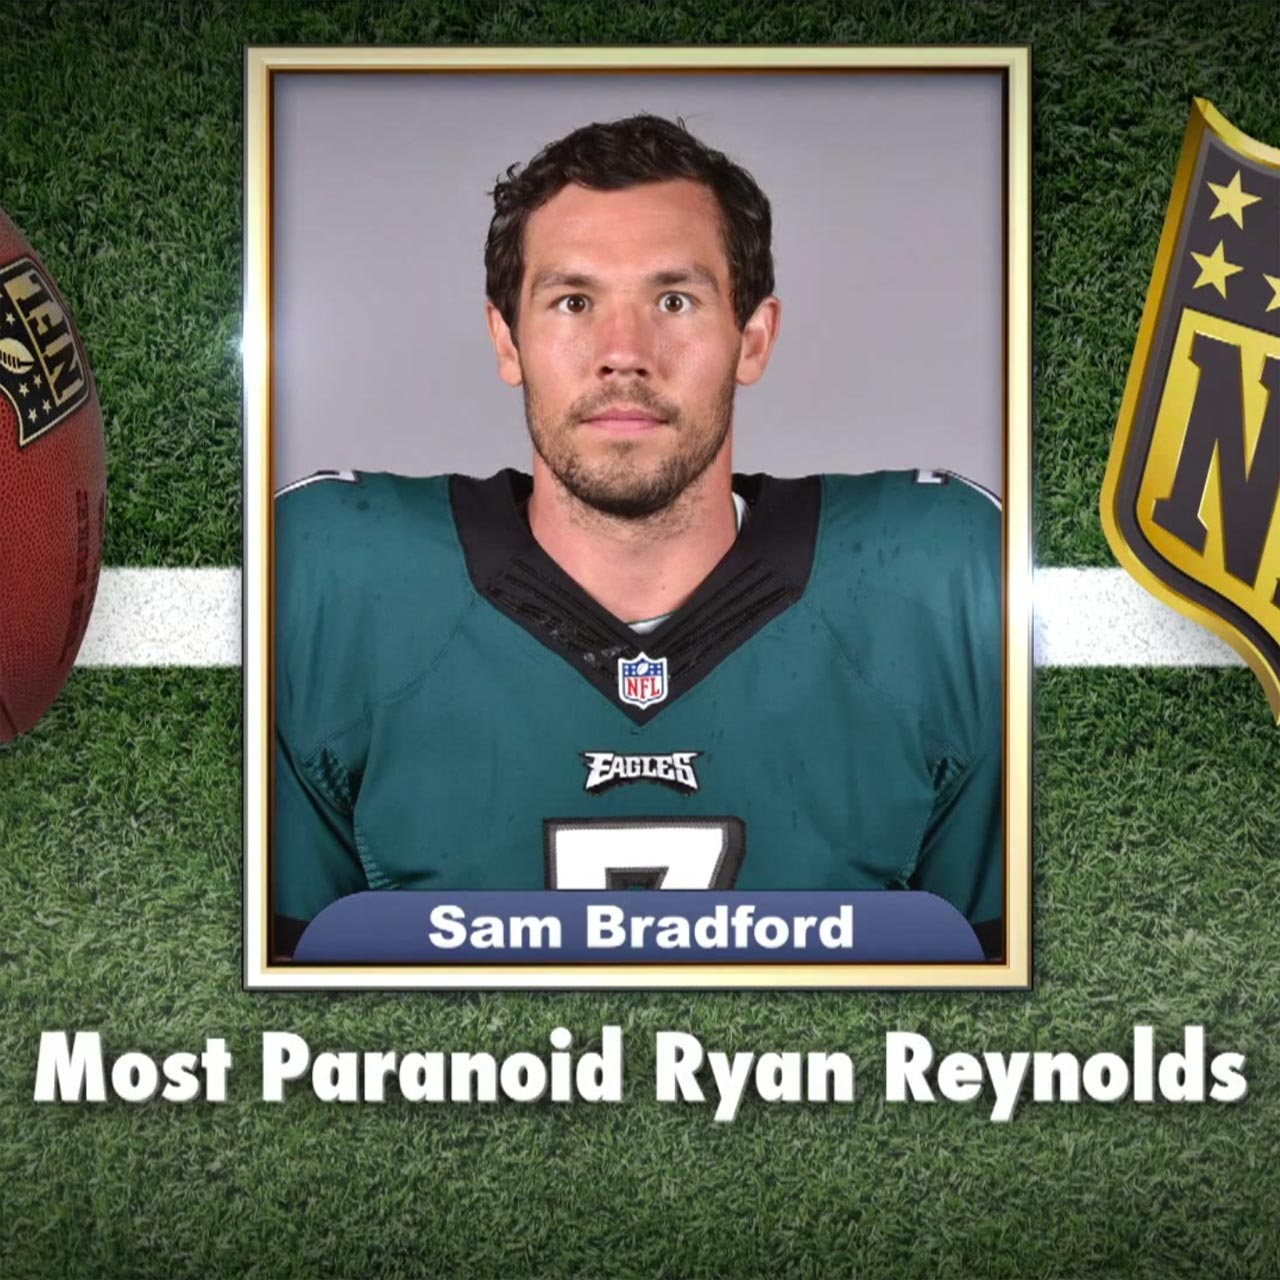 Eagles quarterback Sam Bradford is the Most Paranoid Ryan Reynolds